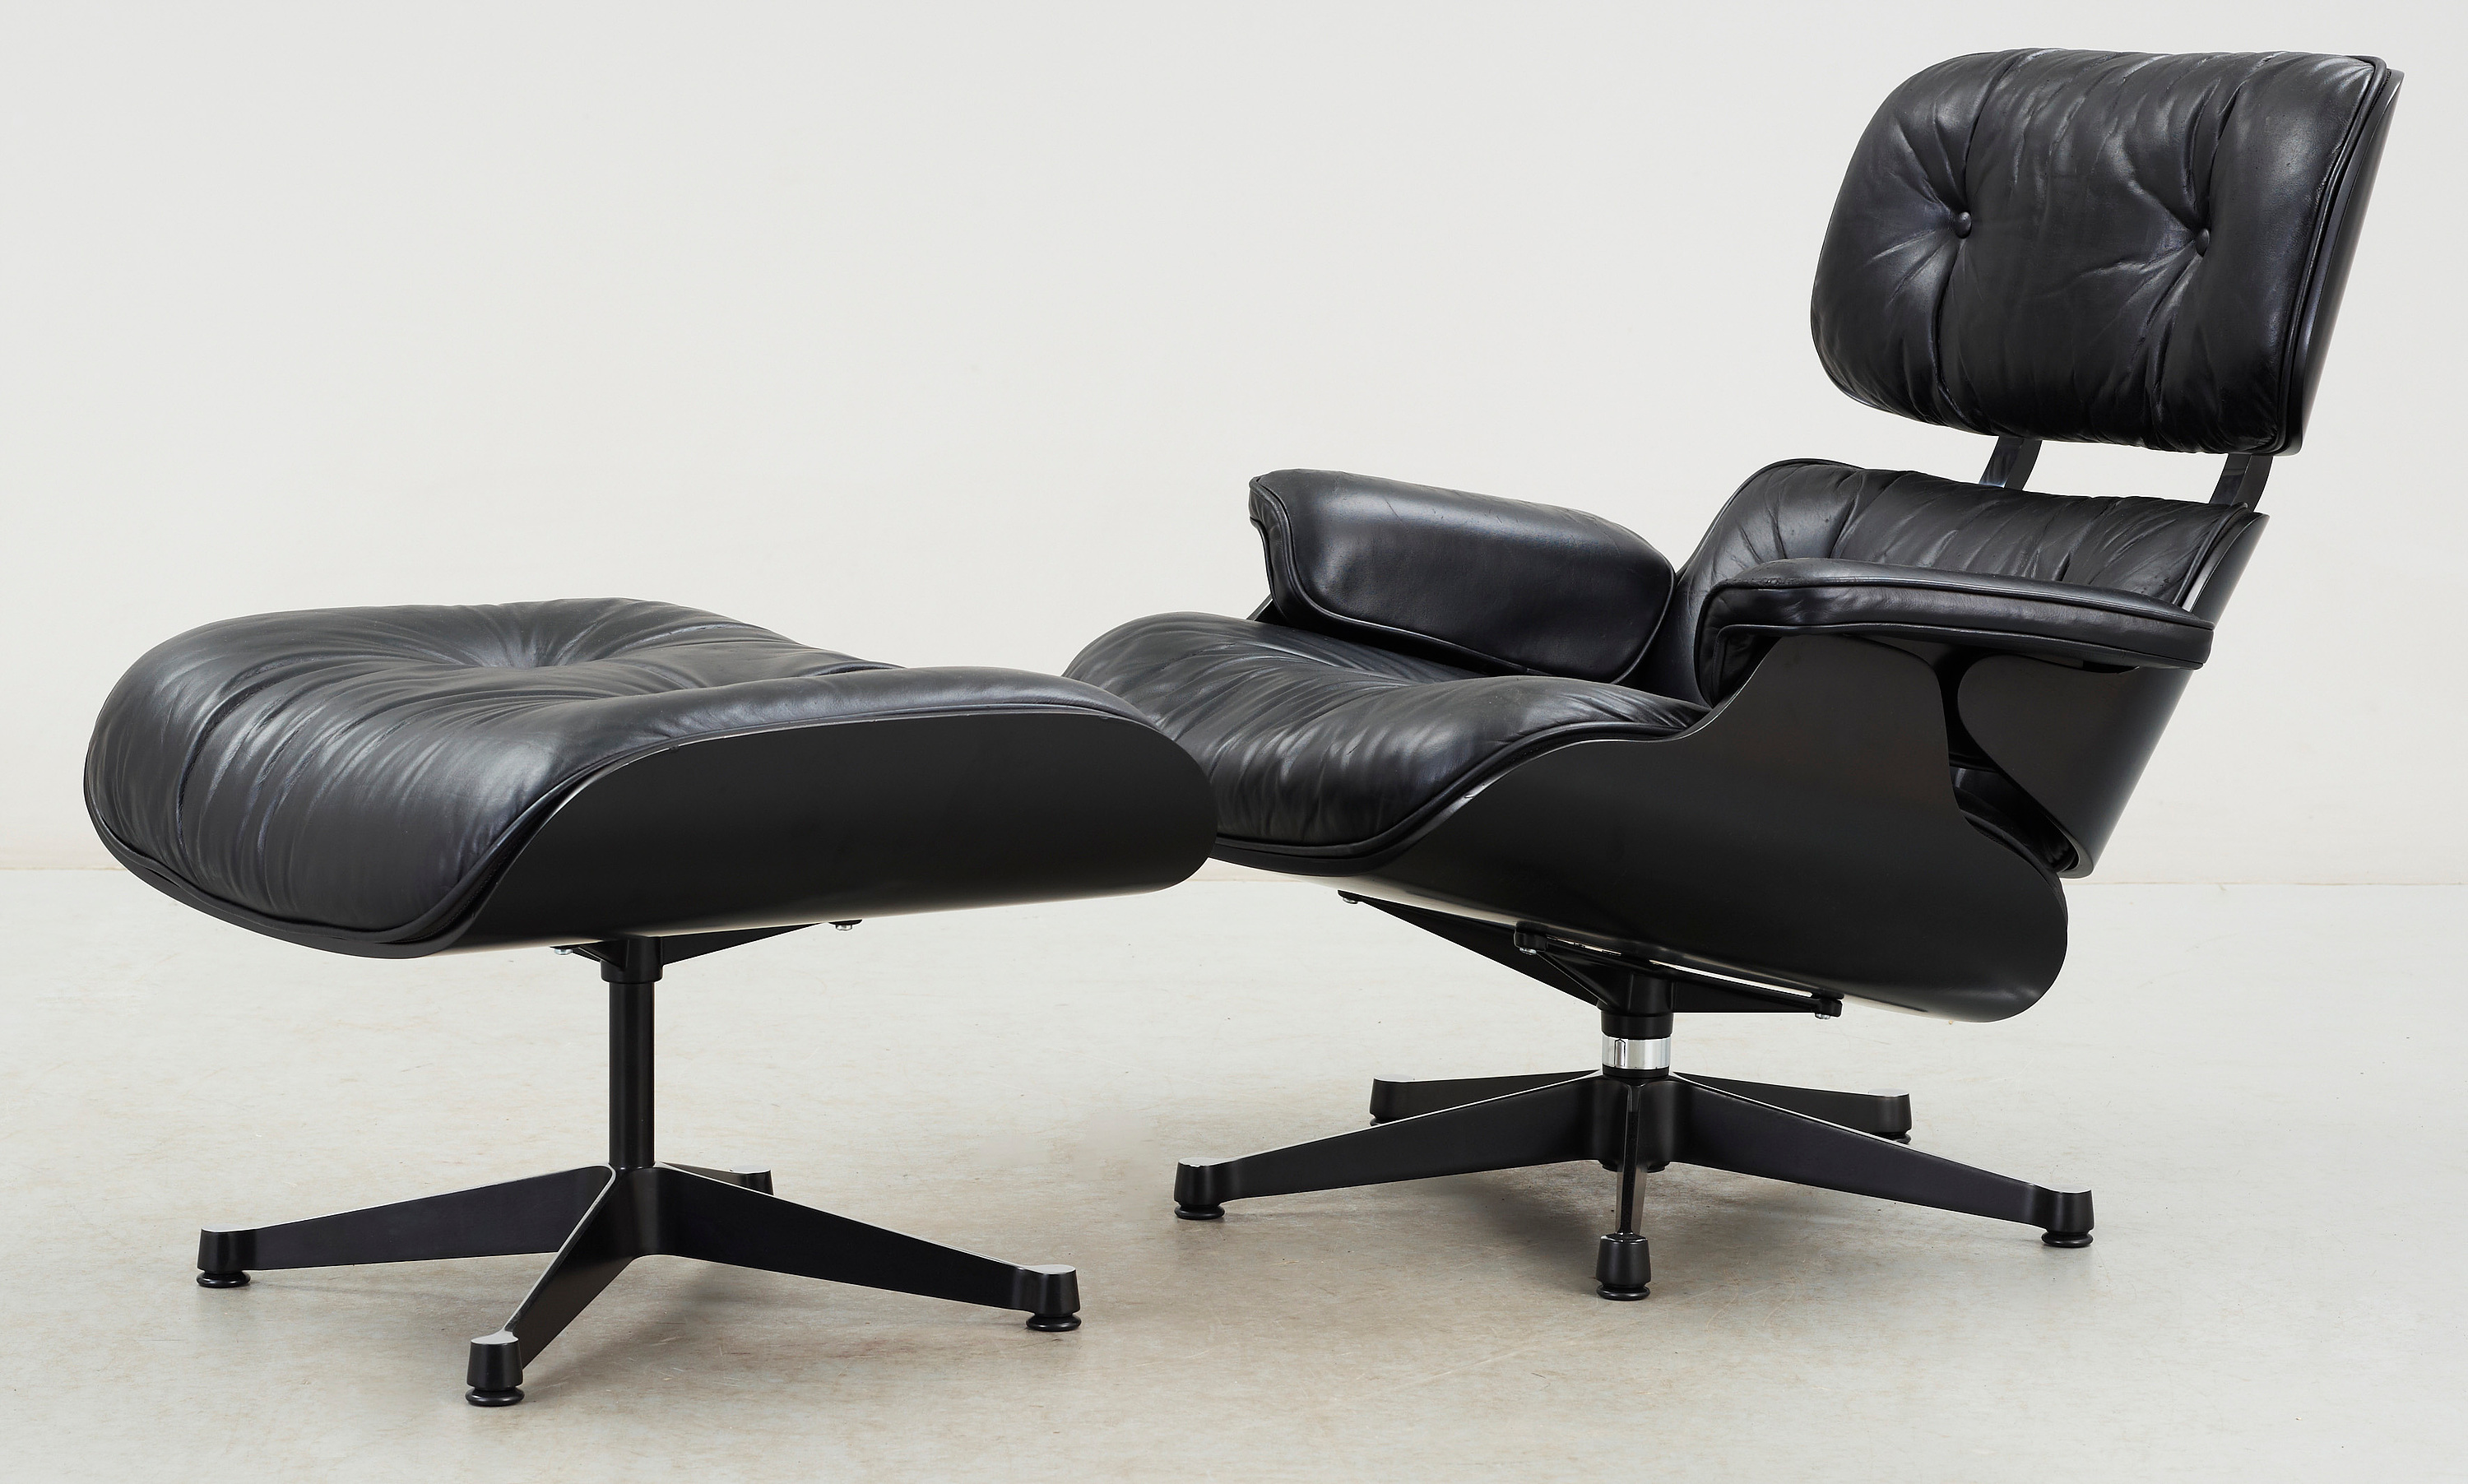 Wondrous Fatolj Med Ottoman Charles Ray Eames Lounge Chair Alphanode Cool Chair Designs And Ideas Alphanodeonline